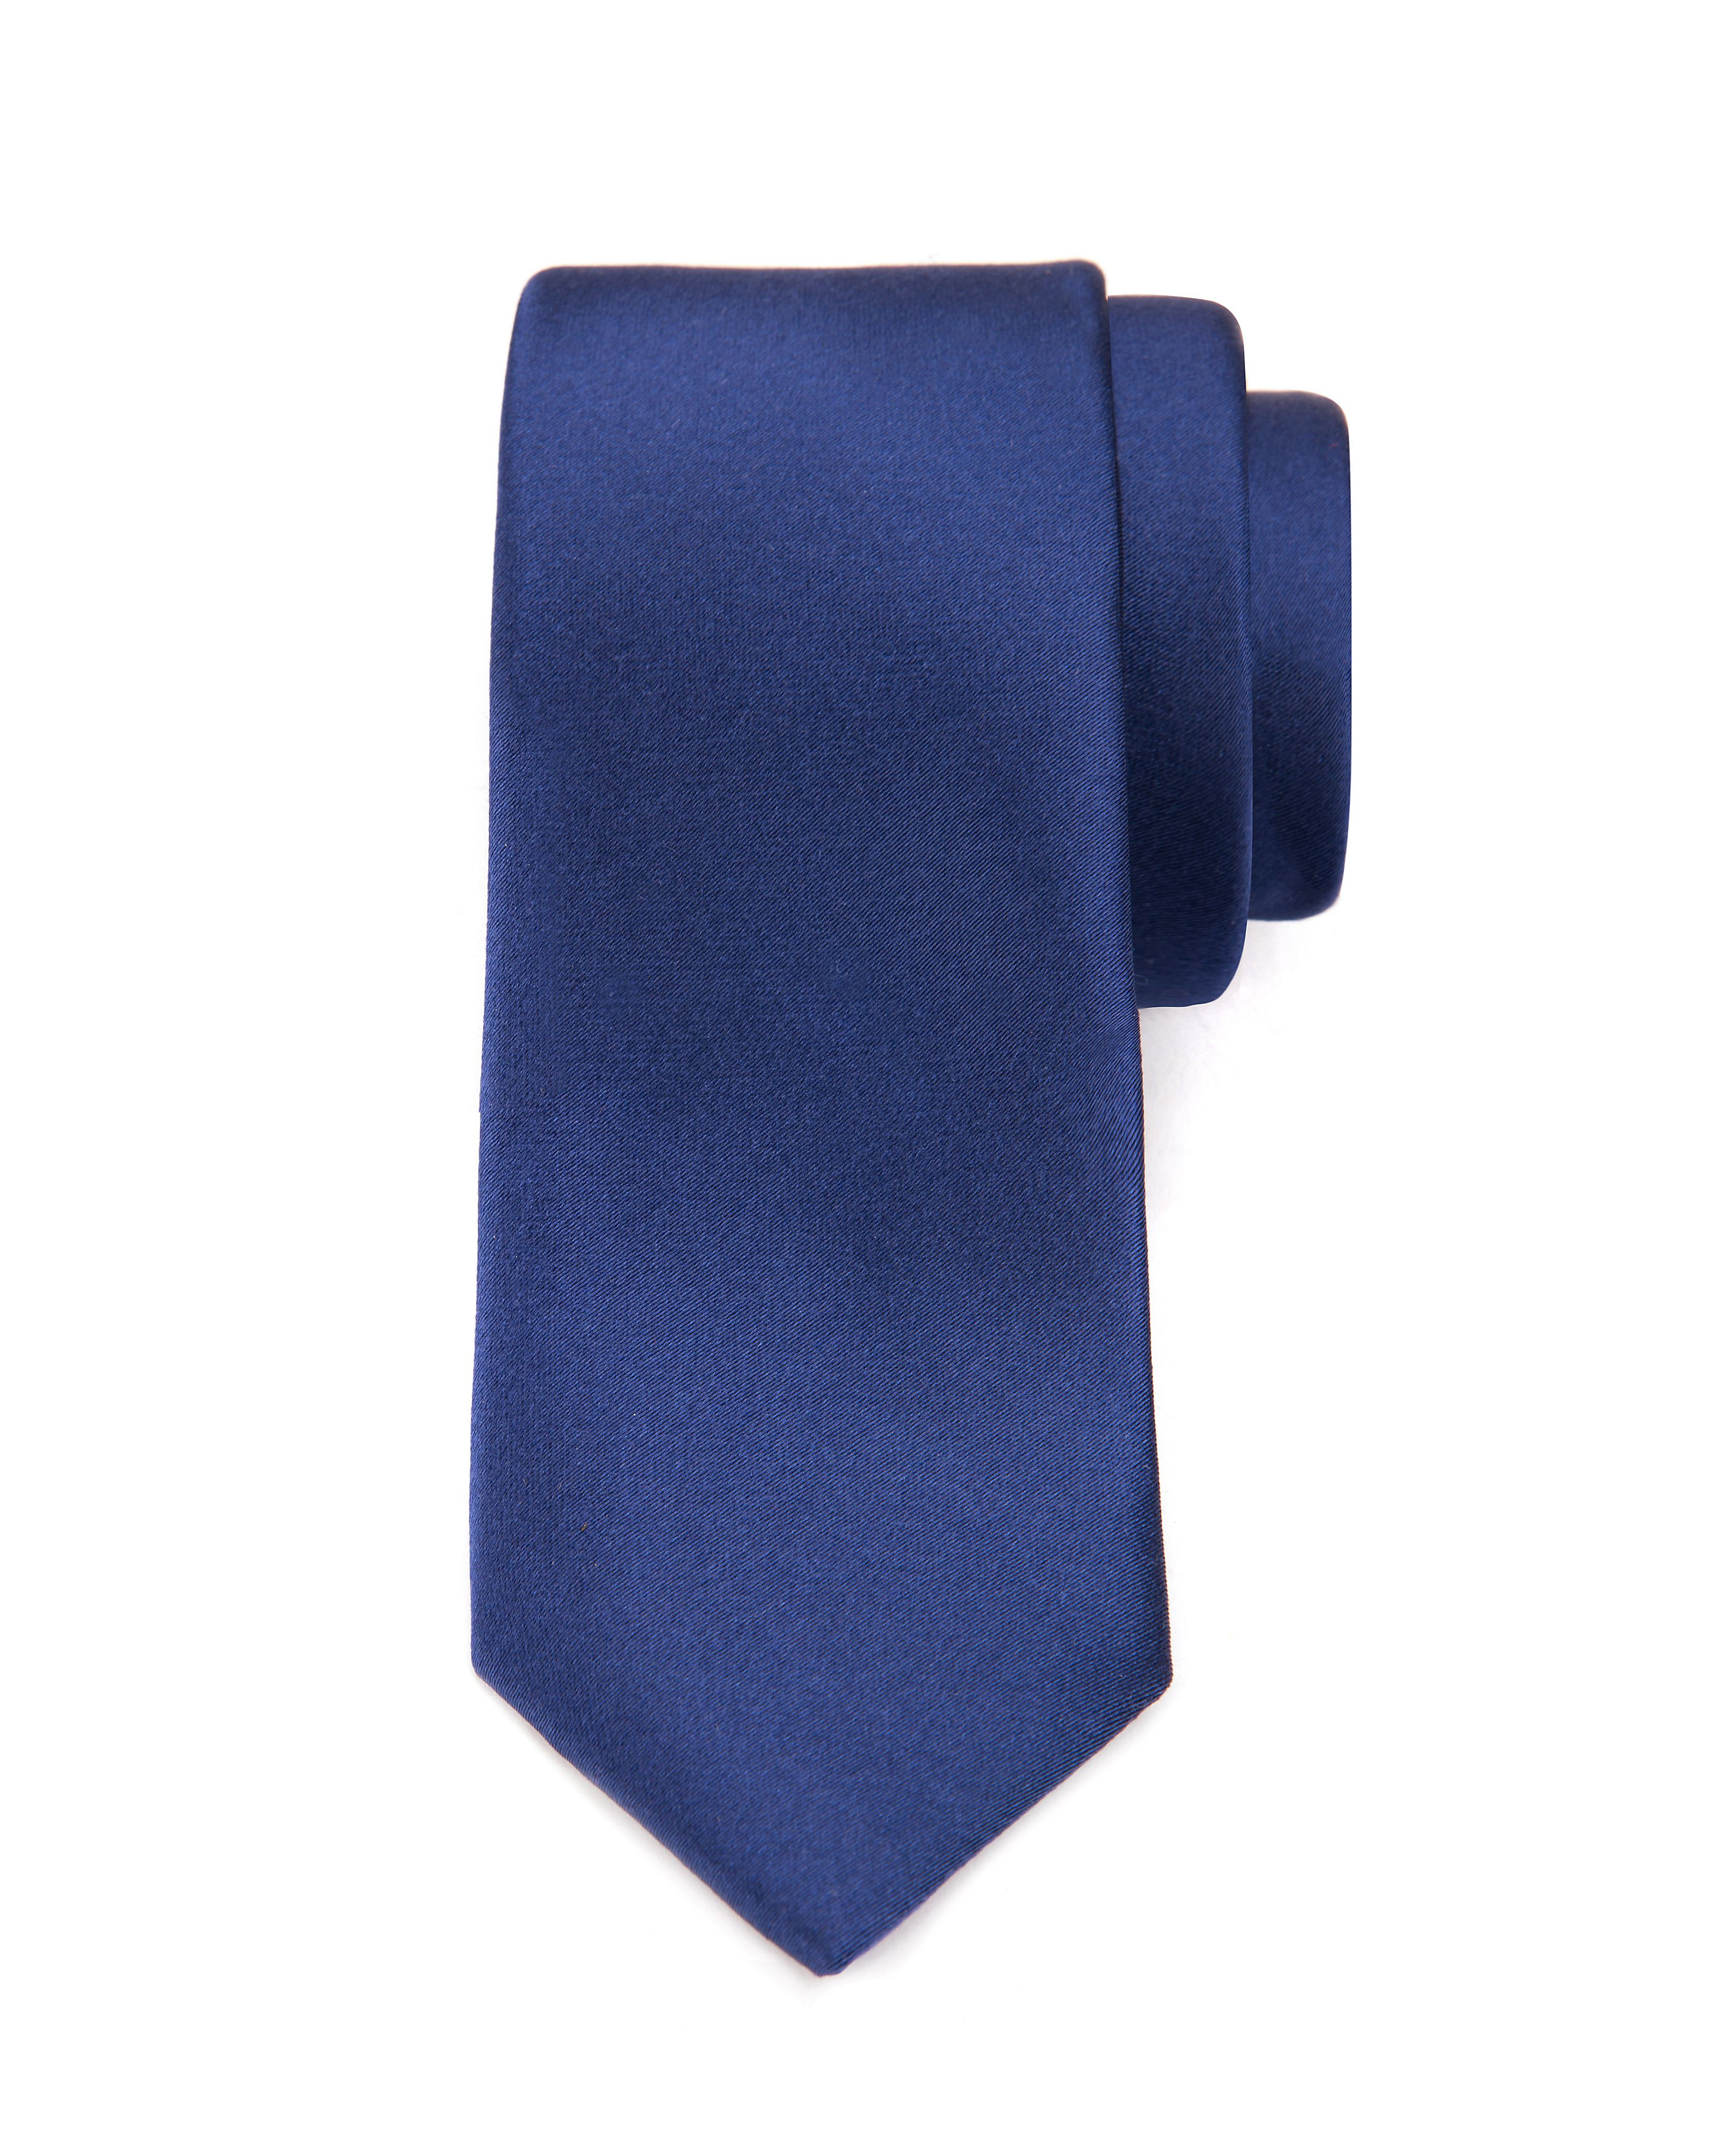 Cloked classic satin skinny tie